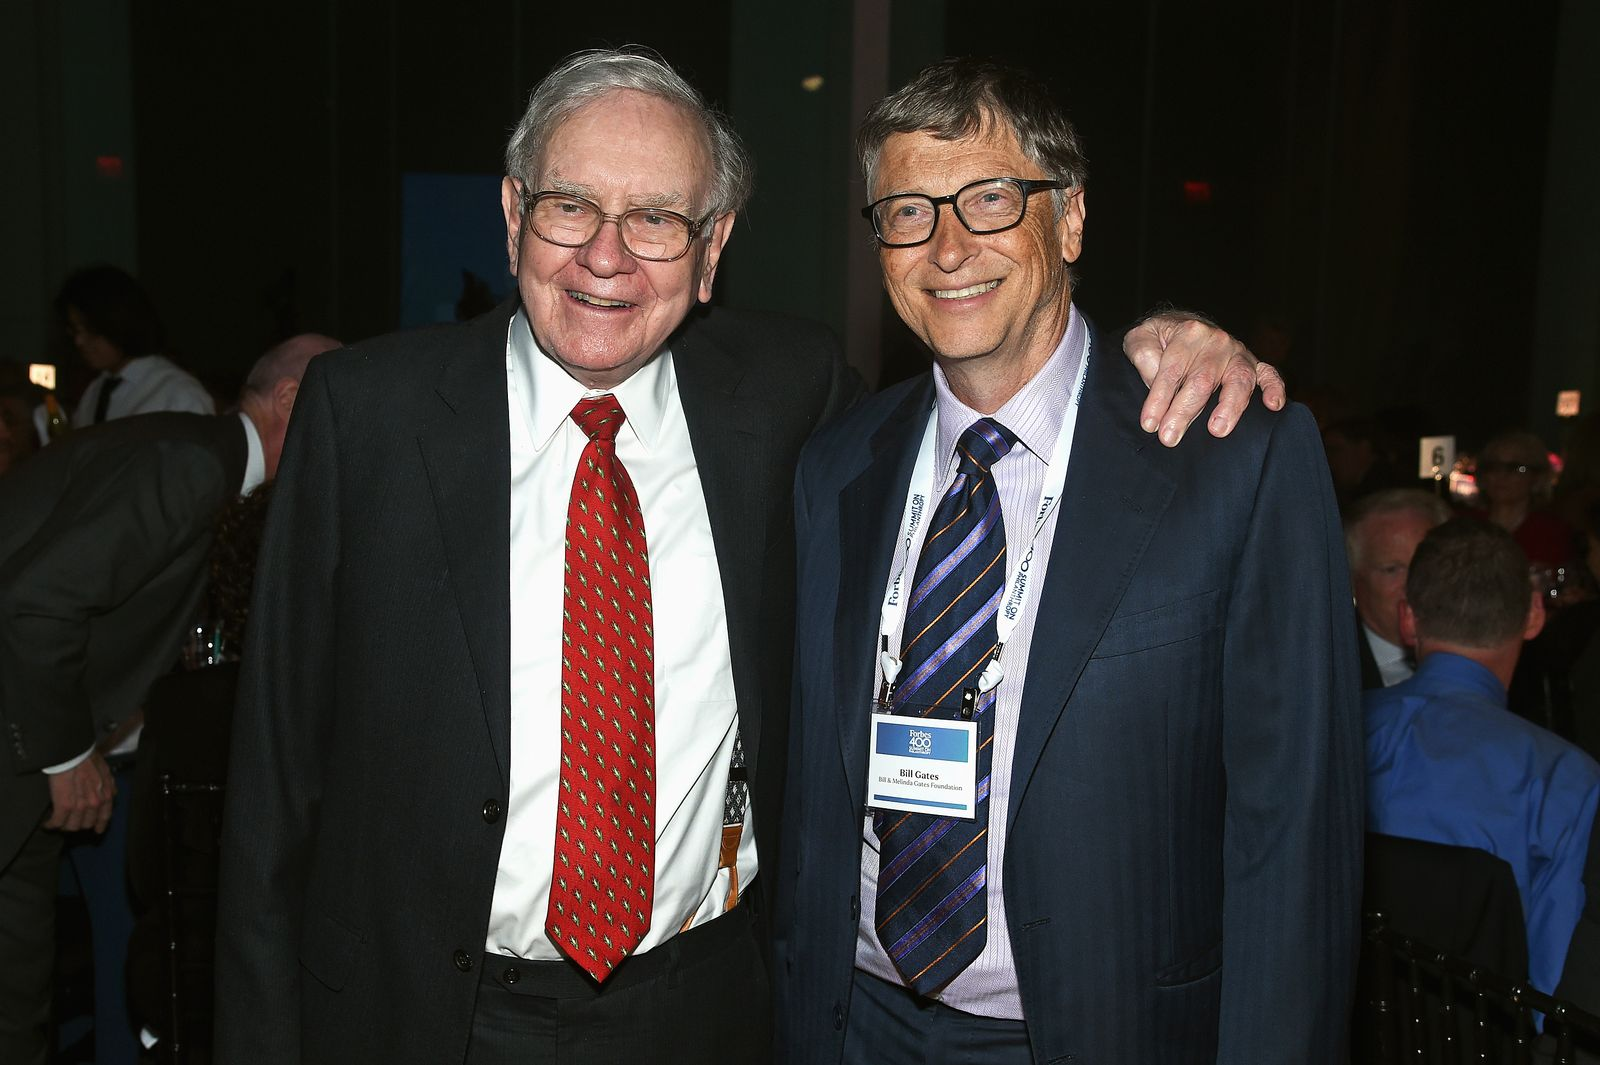 Warren Buffett / Bill Gates